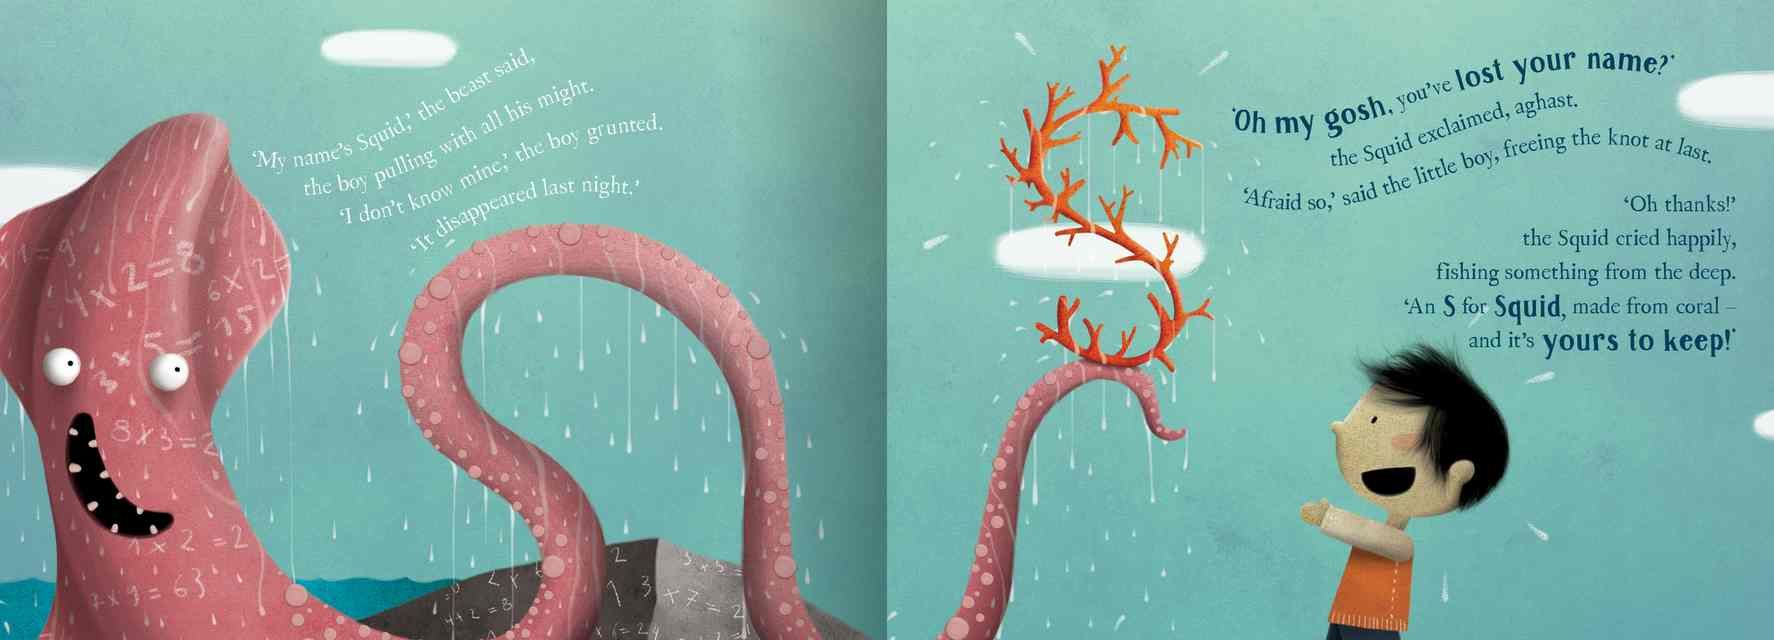 Personalized children's books | LostMy.Name - story for kids